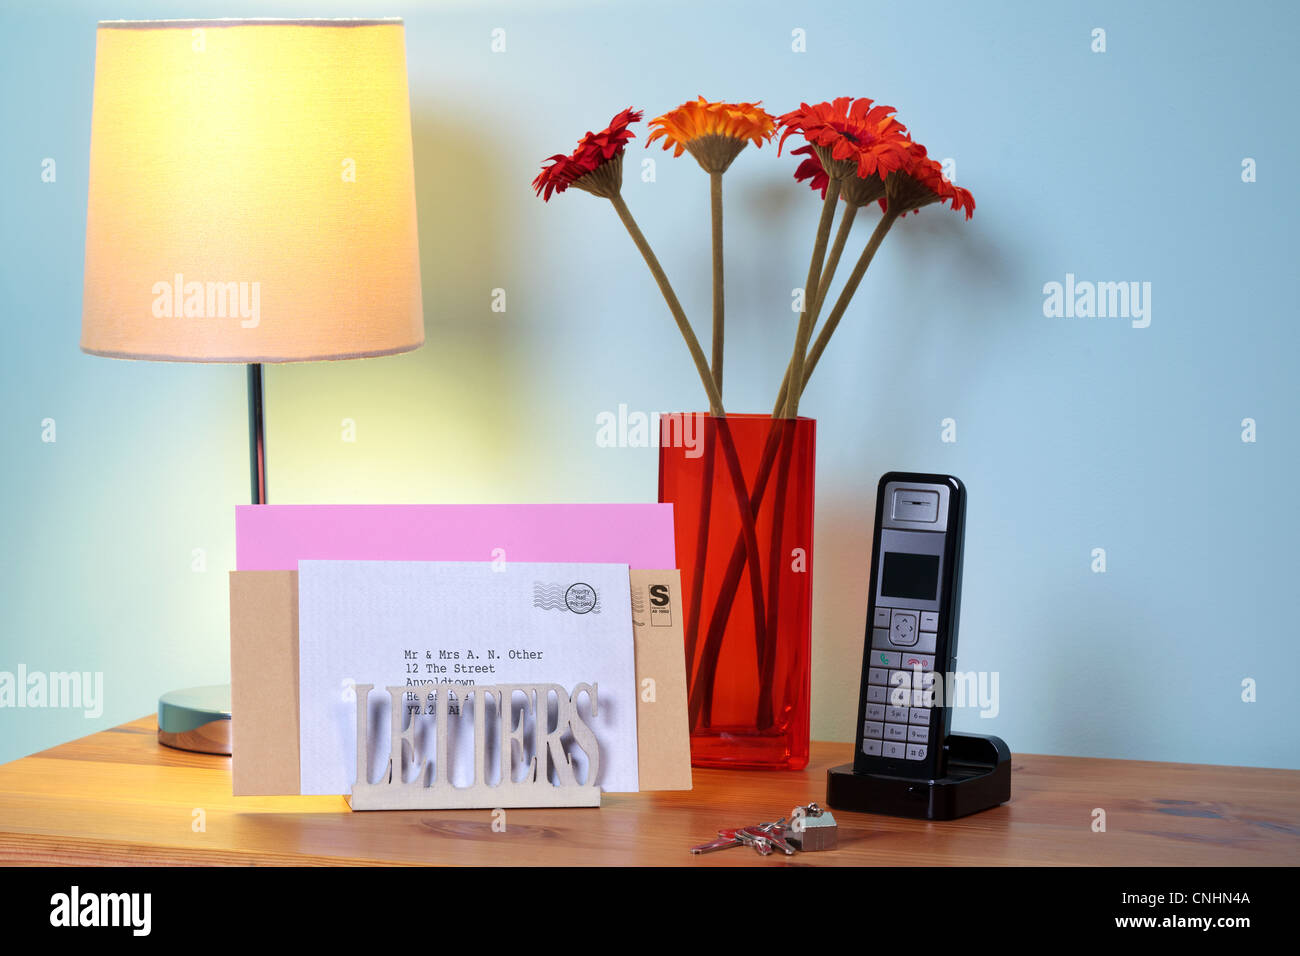 Photo of a letter rack with mail on a hall table. - Stock Image